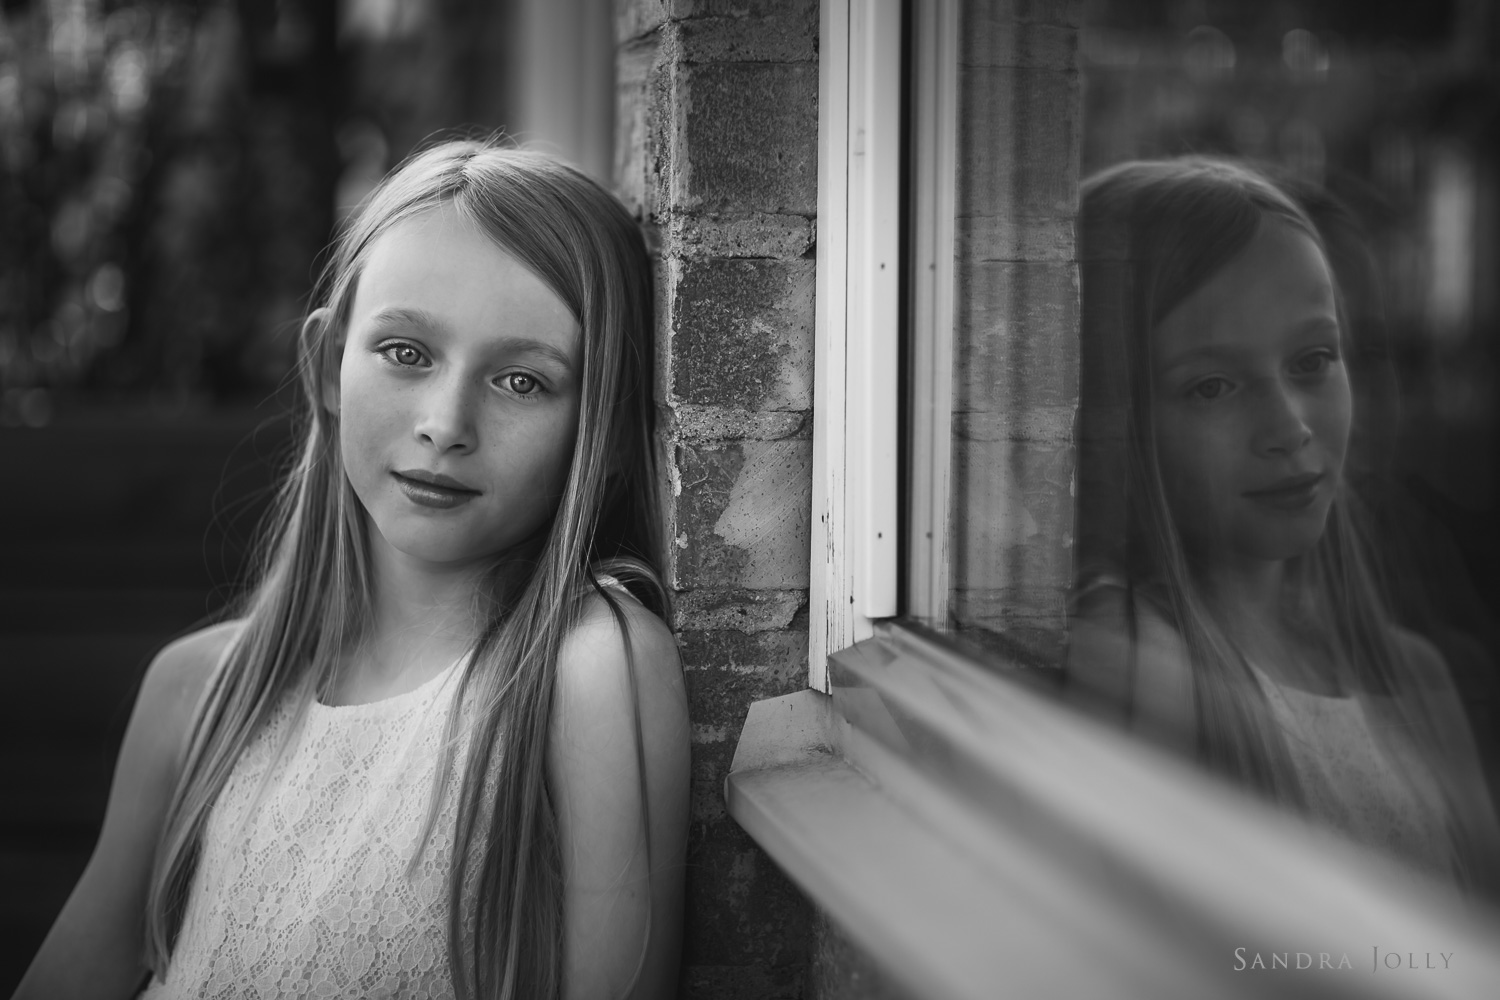 black-and-white-portrait-of-girl-with-reflection-Sandra-Jolly.jpg